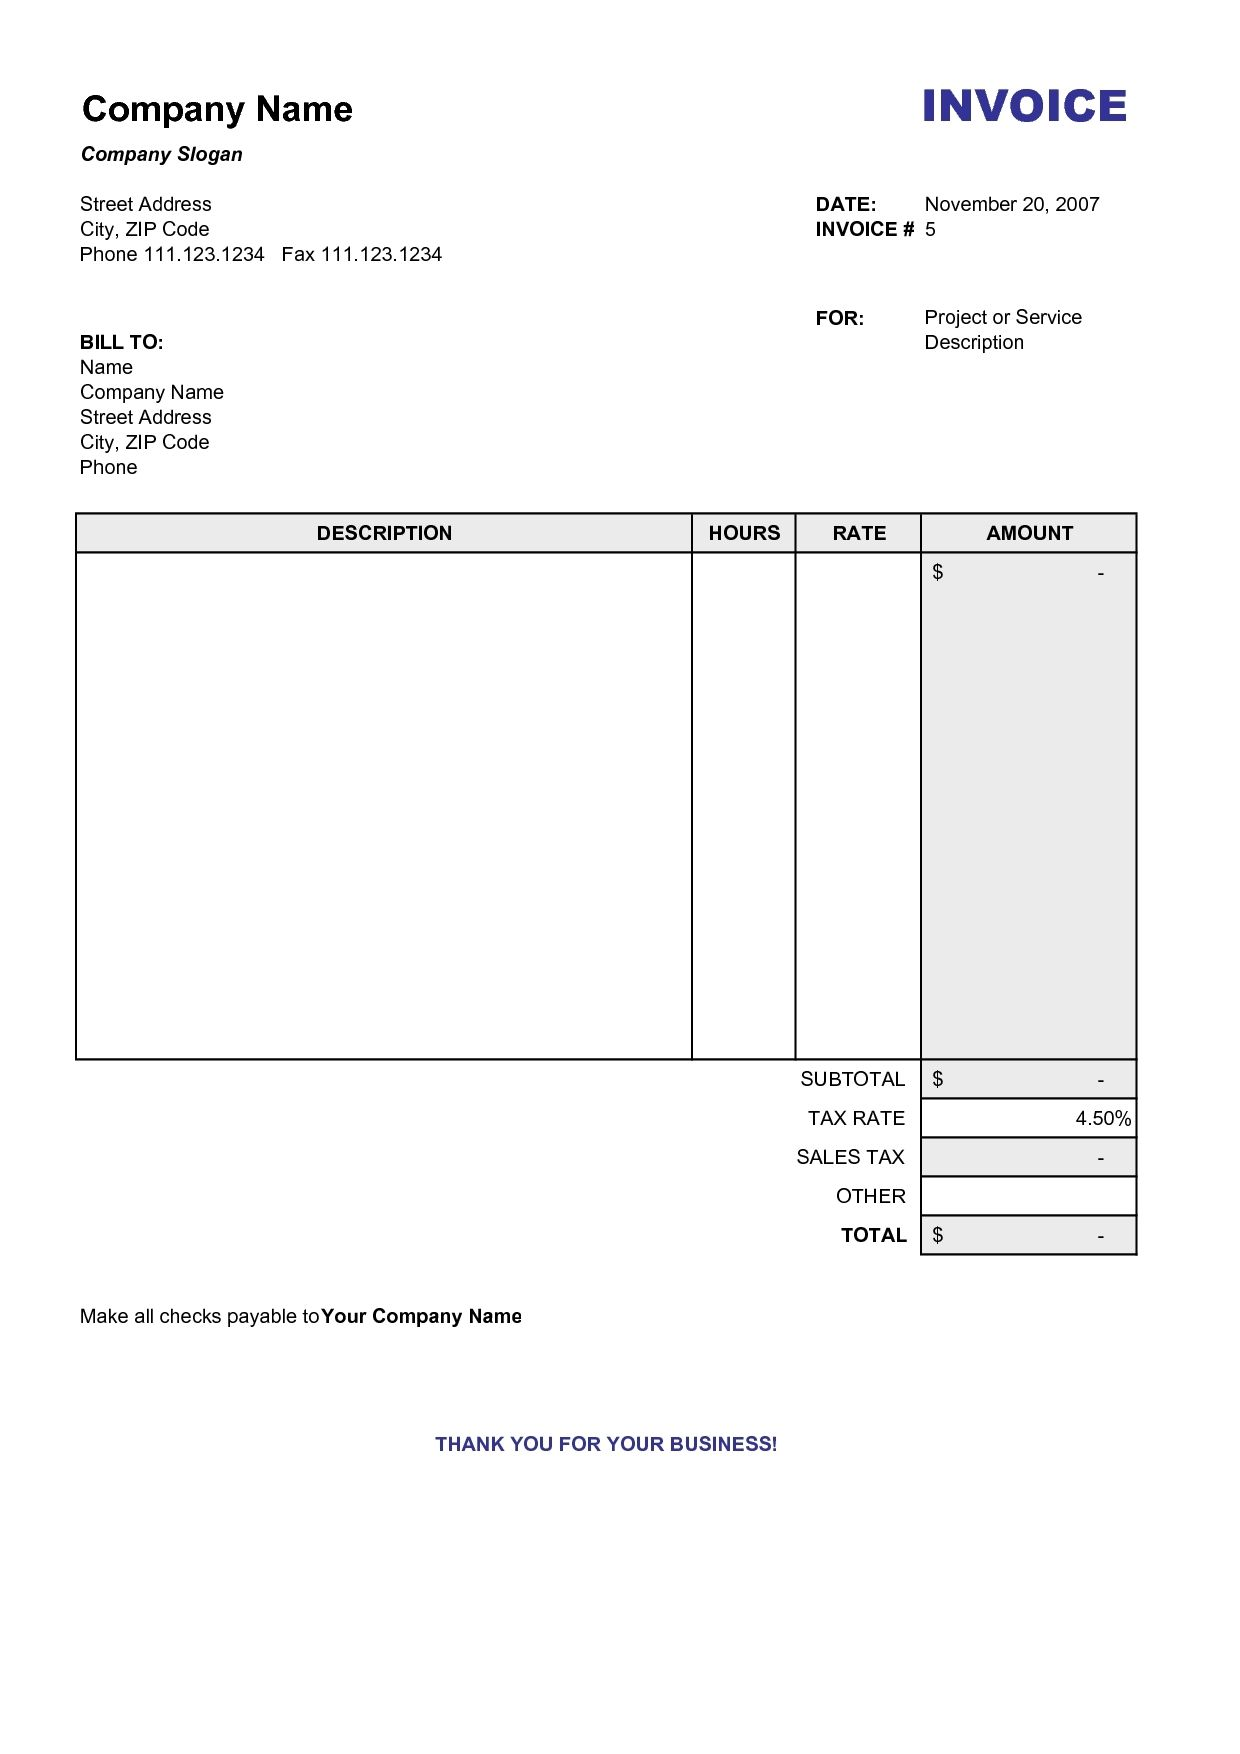 Copy Of A Blank Invoice Invoice Template Free Copy Of Blank - Free invoice pdf template for service business